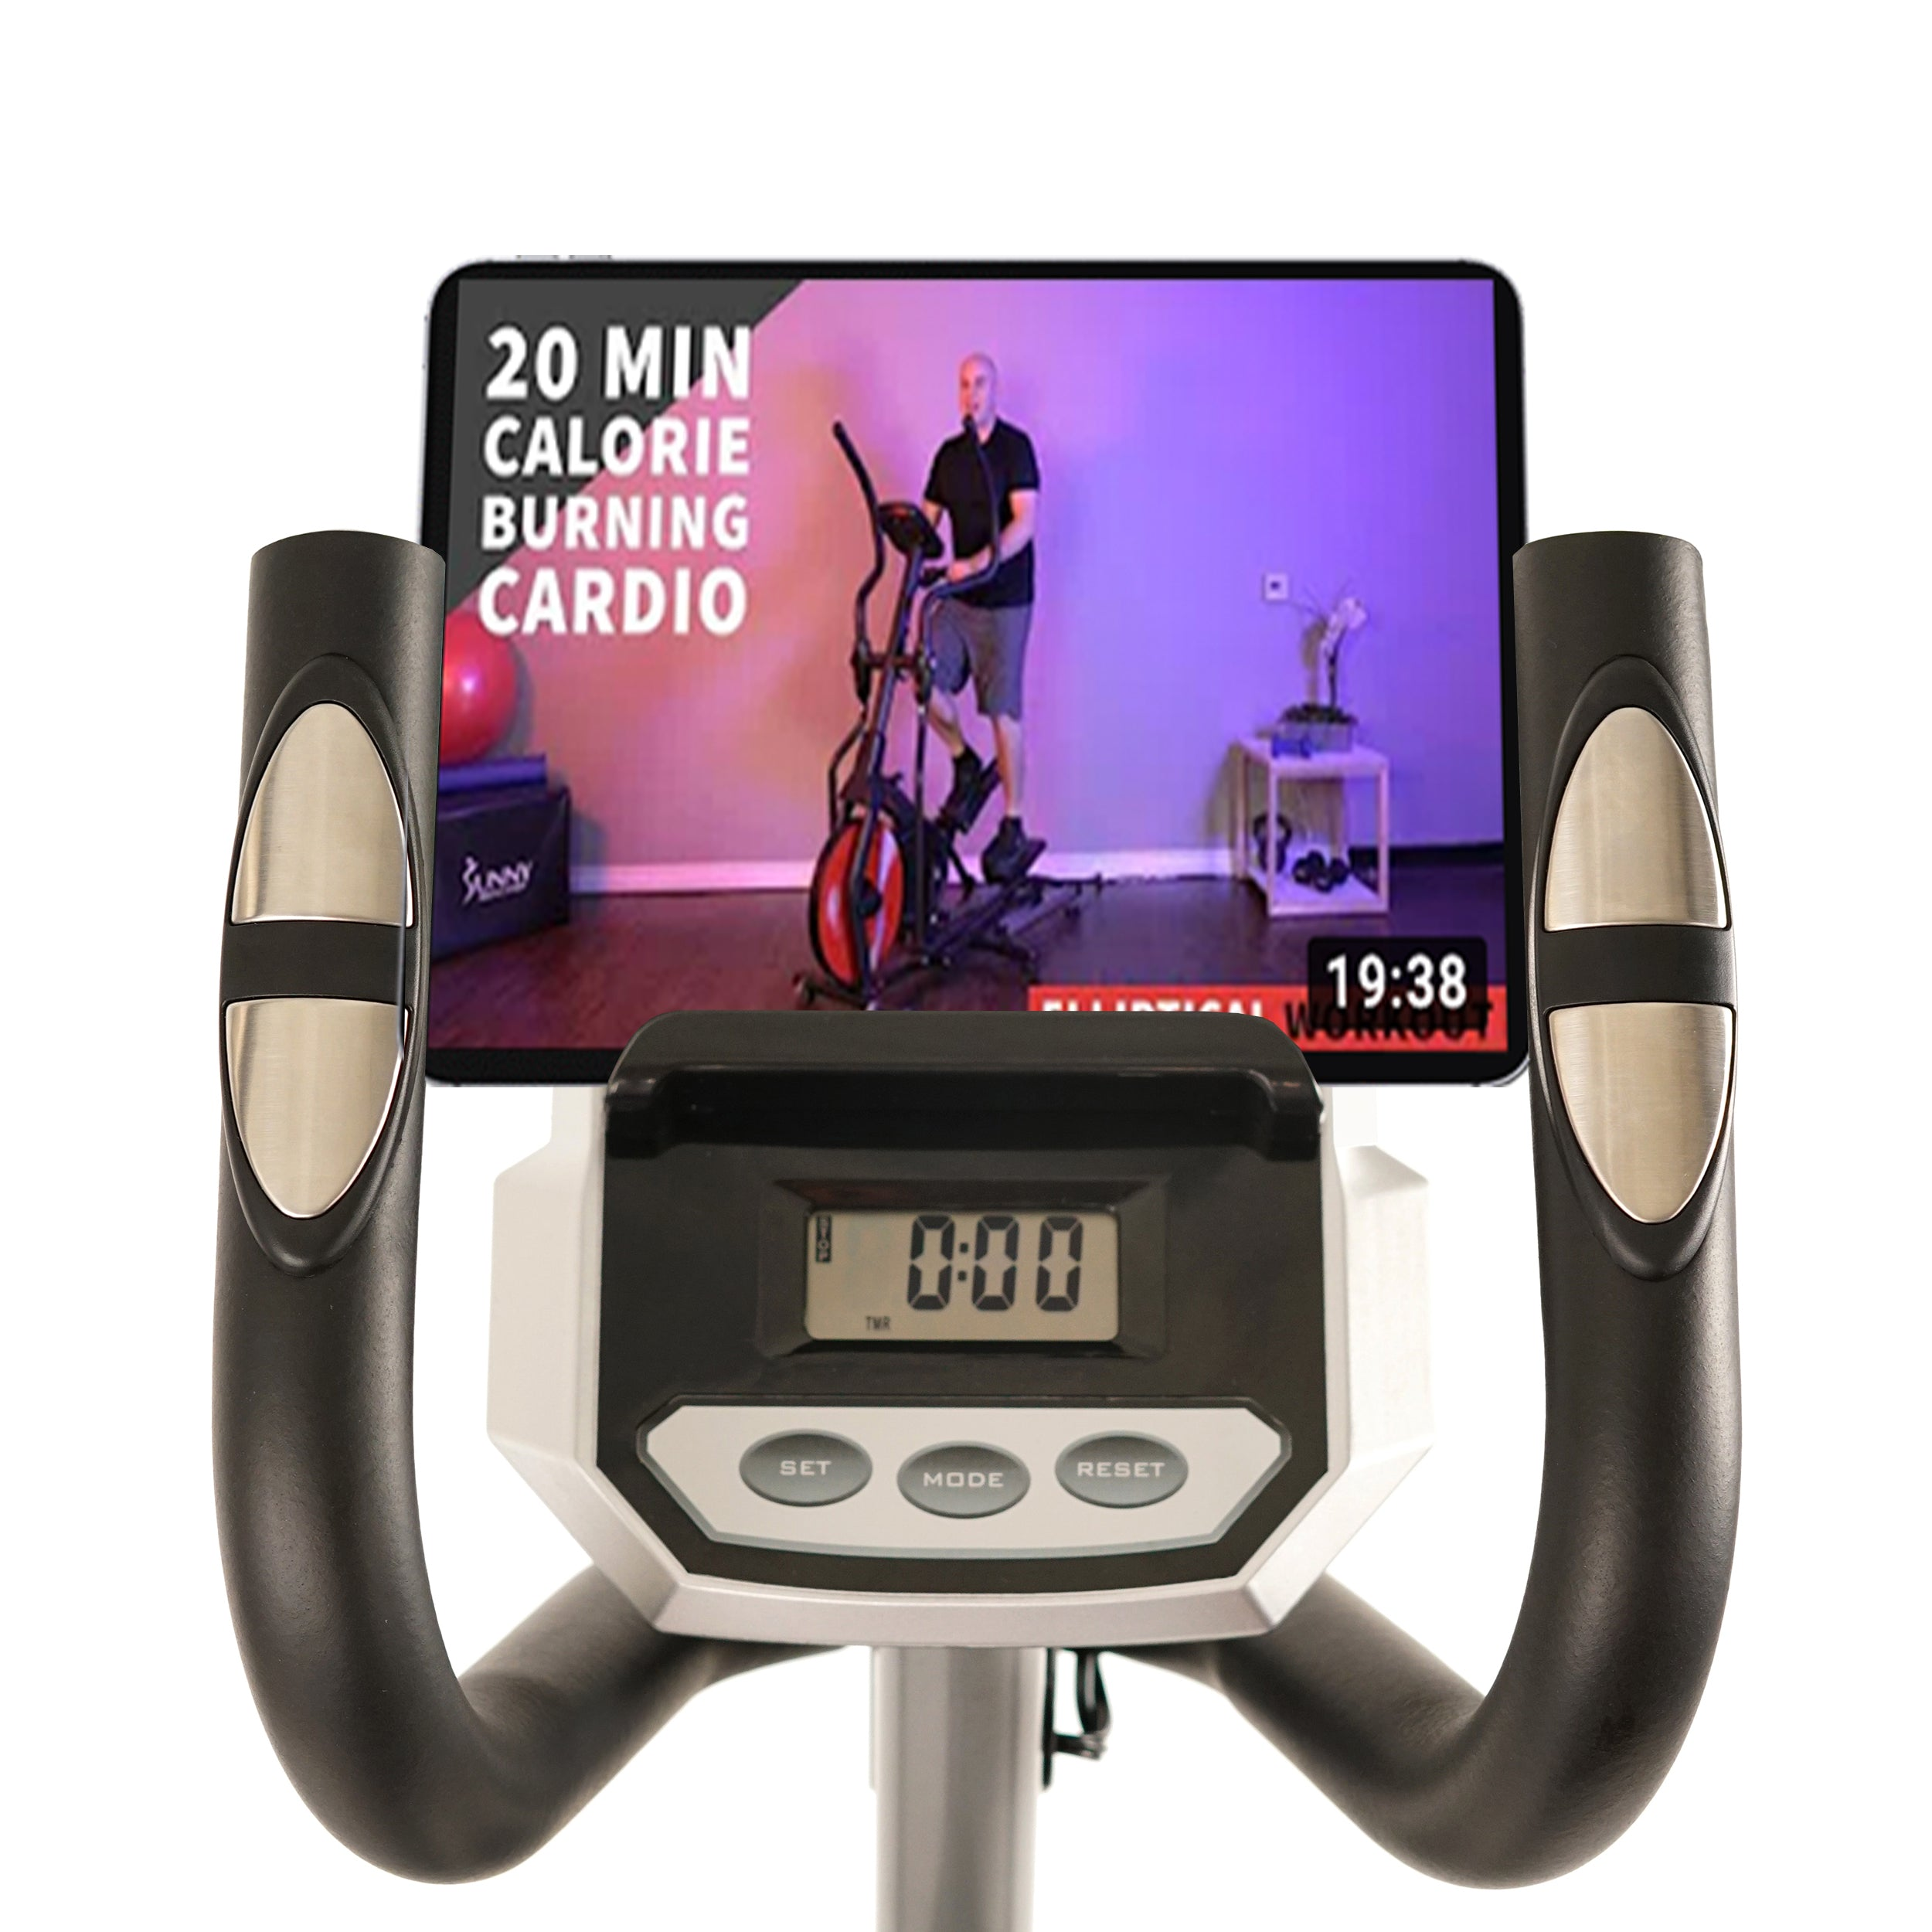 sunny-health-fitness-ellipticals-magnetic-elliptical-trainer-elliptical-machine-tablet-holder-LCD-monitor-and-heart-rate-monitor-SF-E3810-deviceholder